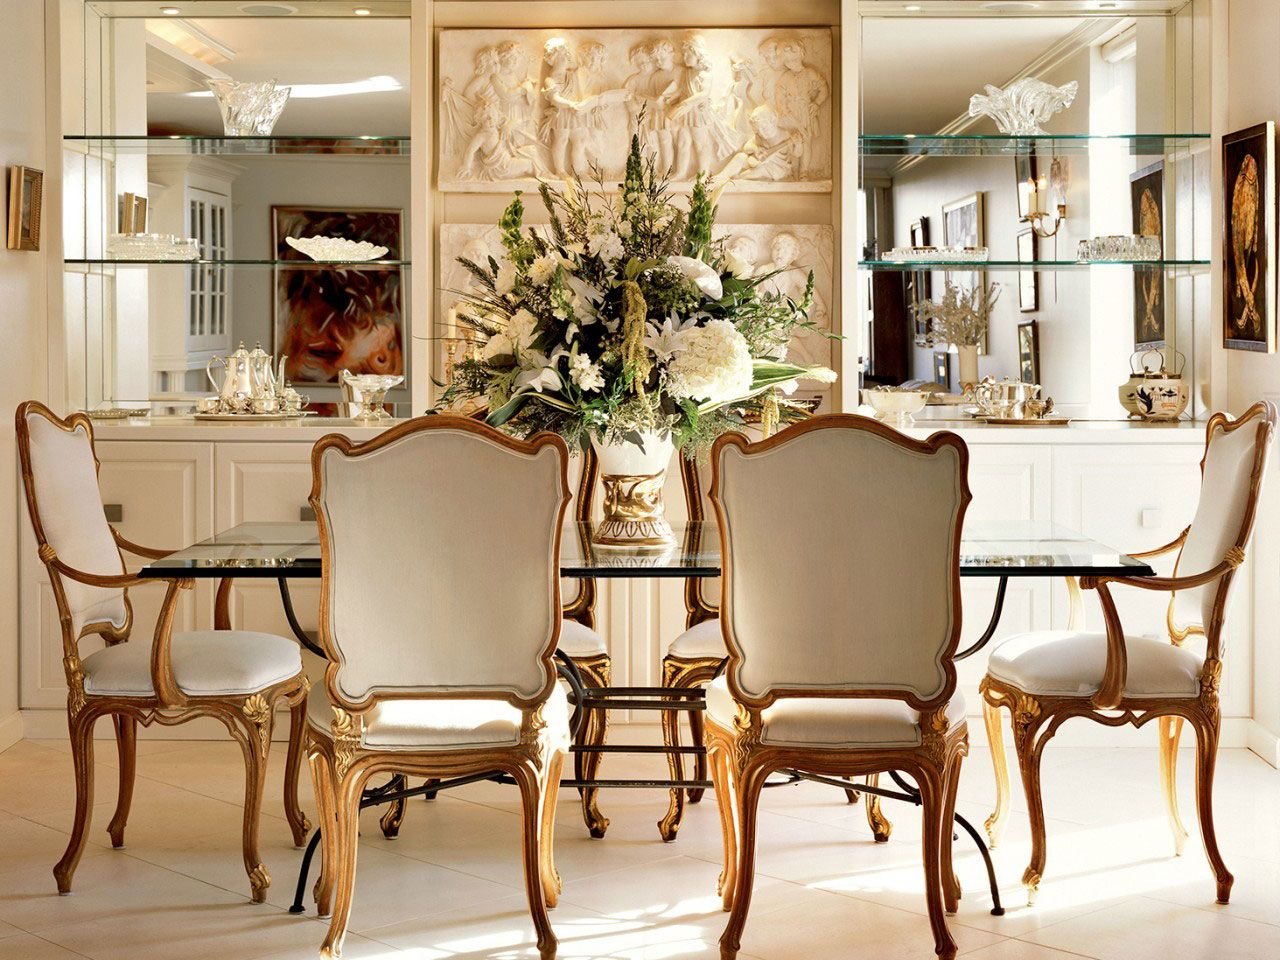 Delightful Room · Stunning Luxurious Dining Room Design ... Idea